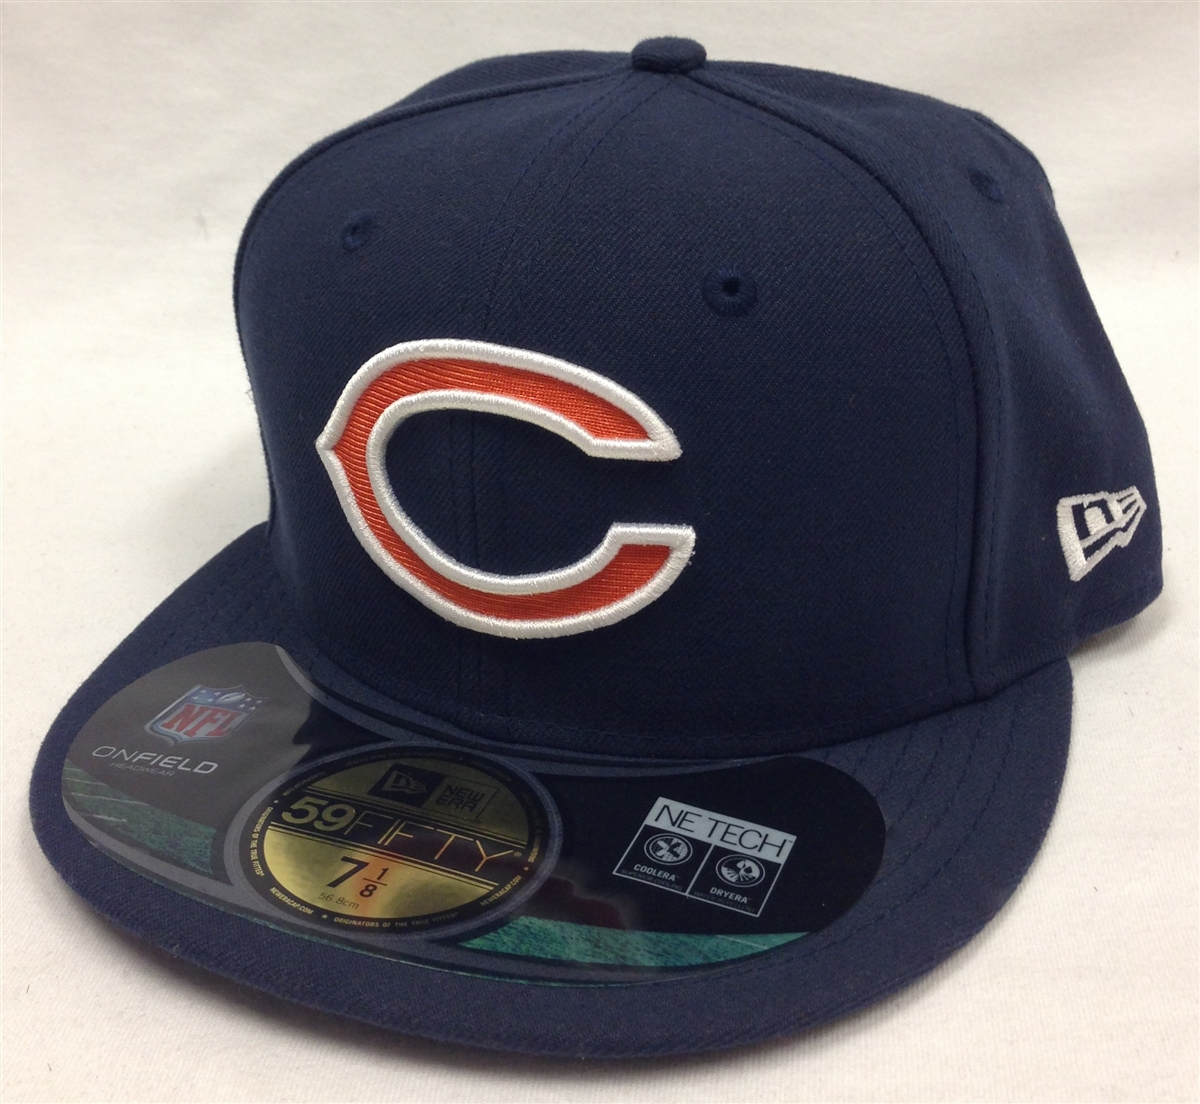 New Era 59Fifty Chicago Bears Onfield Navy Fitted Cap 0f85993de9f0